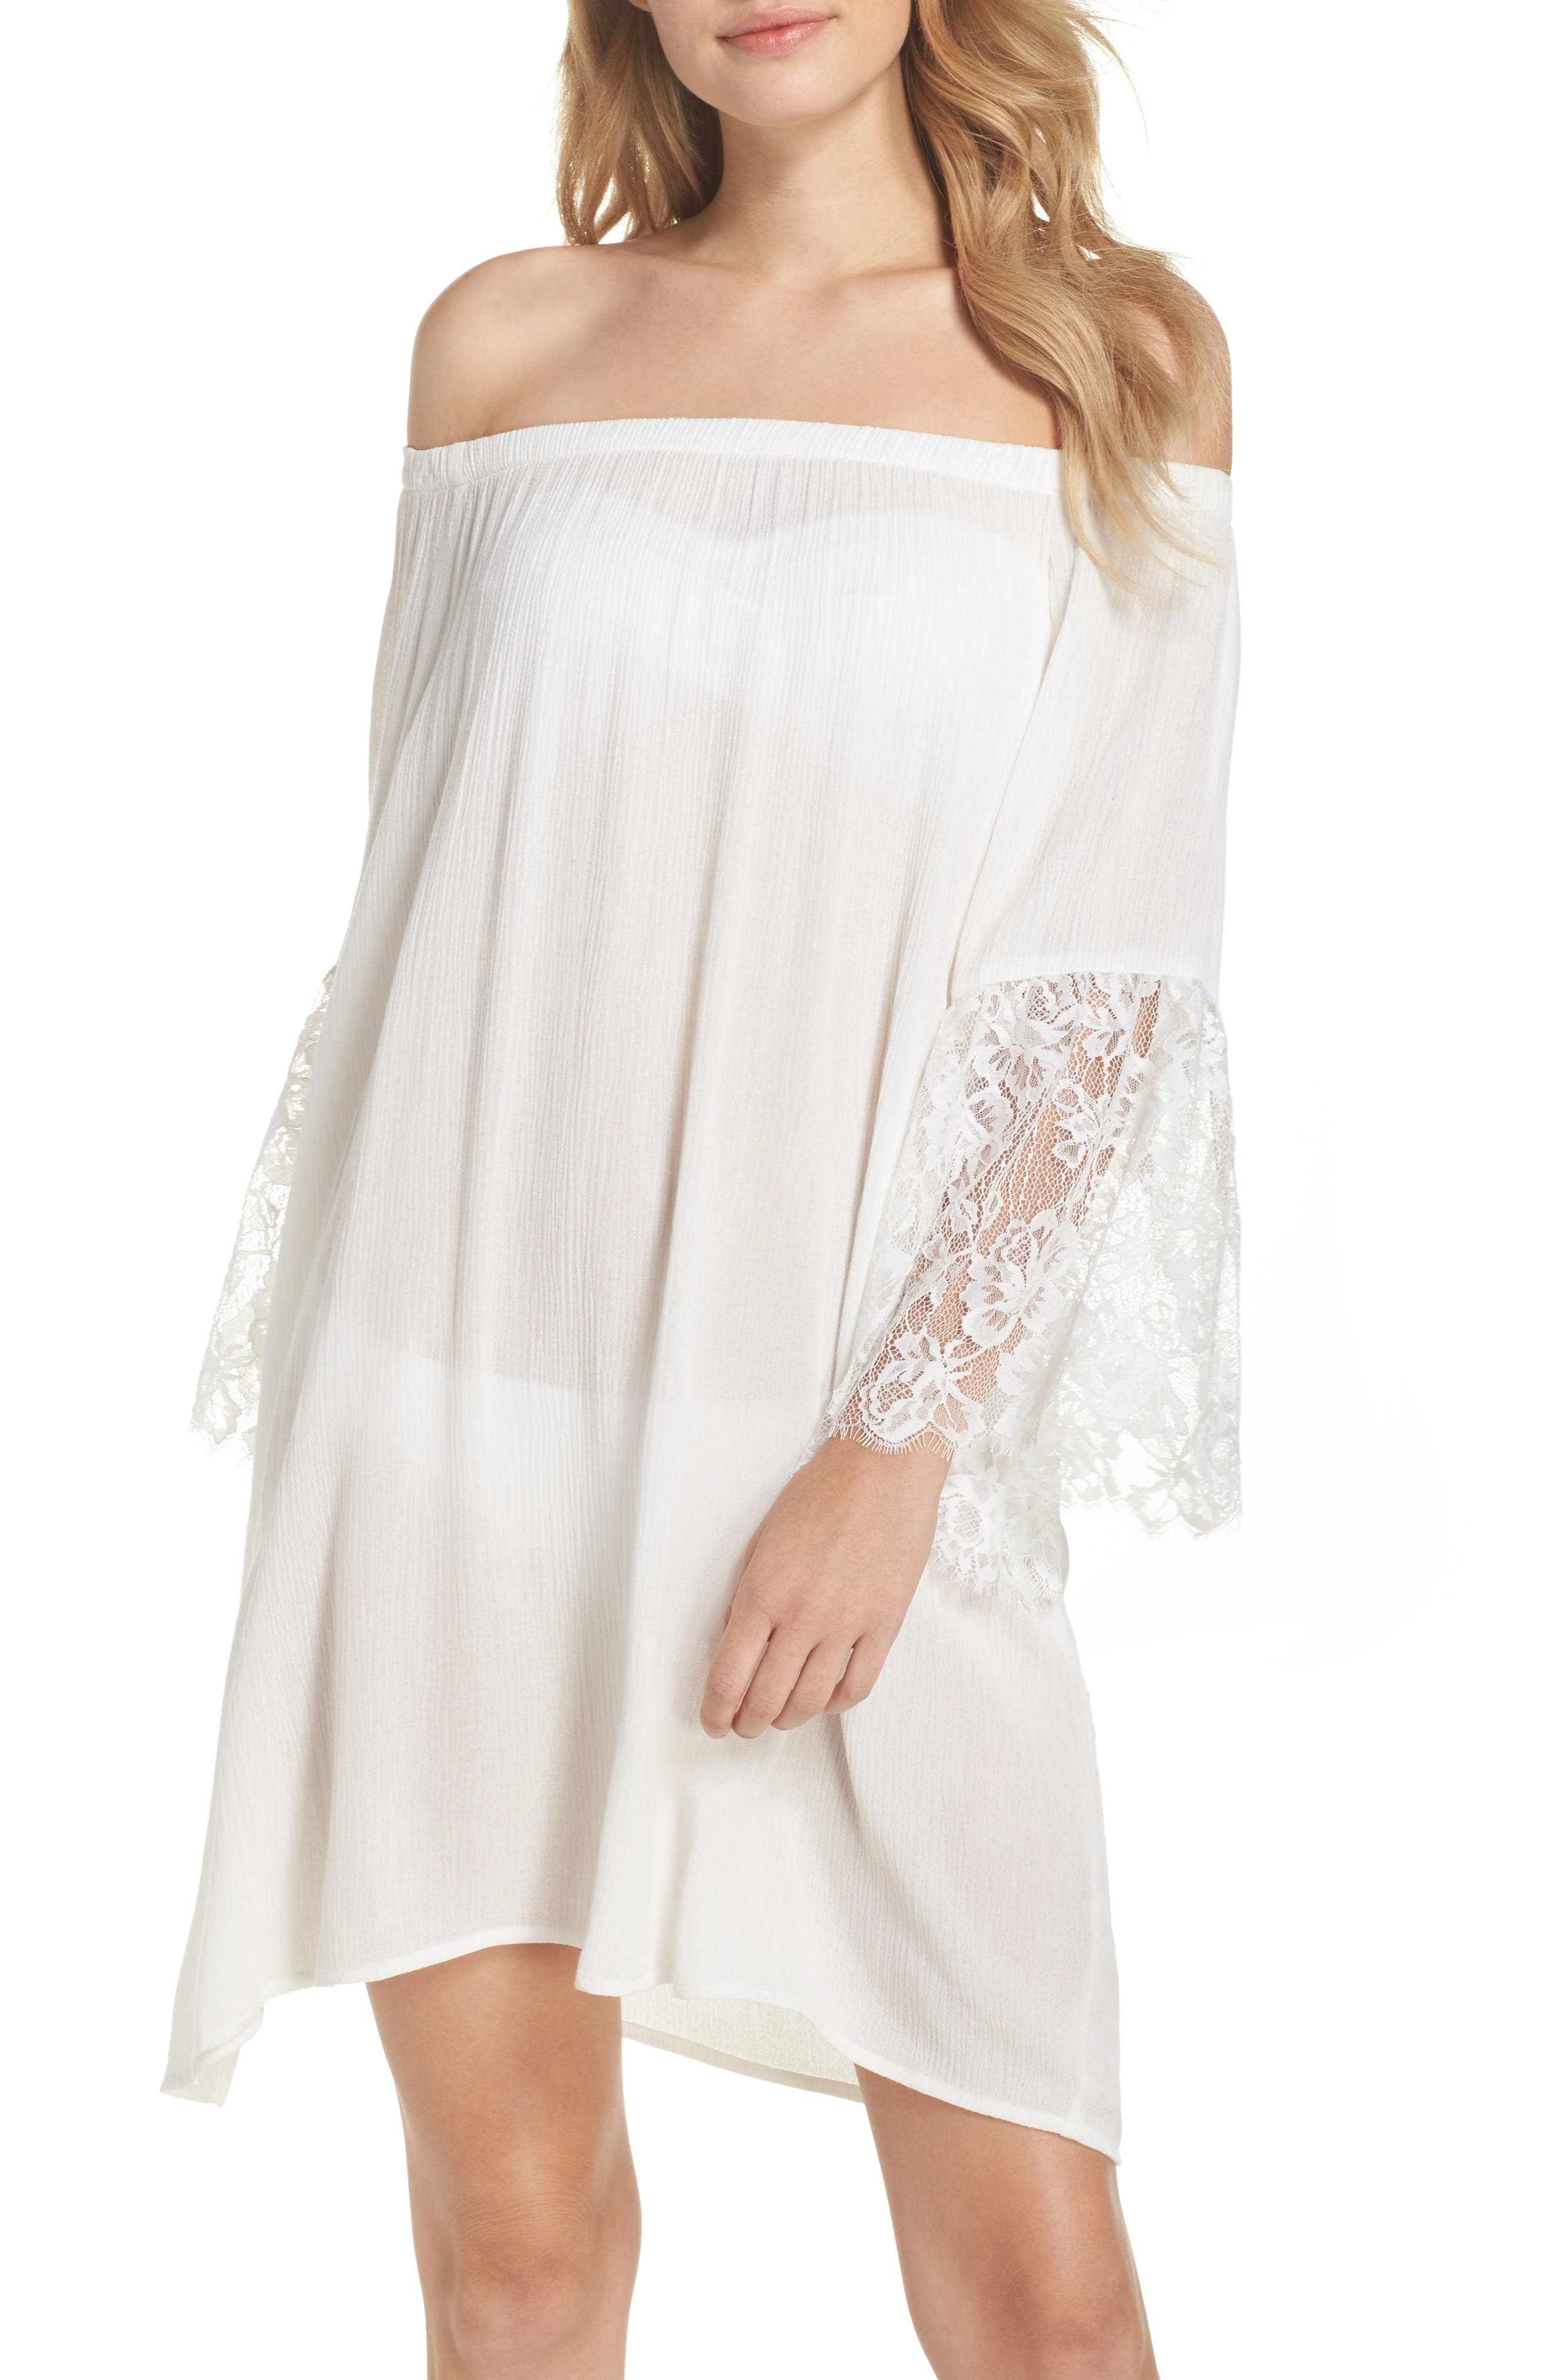 Main Image - Chelsea28 Off the Shoulder Cover-Up Dress